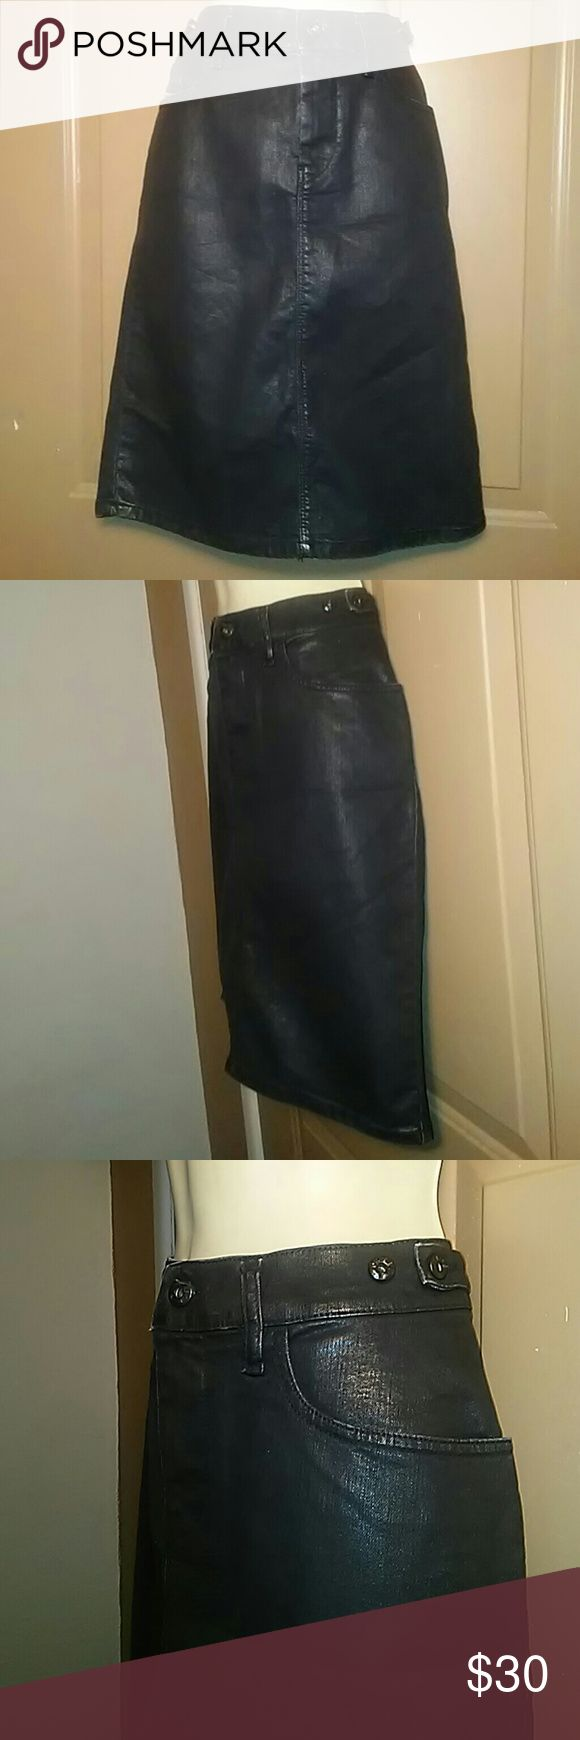 """NWT BLACK FAUX LEATHER DIESEL SKIRT-SIZE 28 -Brand New with Tags -Diesel Black Faux Leather Skirt -Size 28 -5 Pockets -6"""" slit in the middle, back of skirt -75% Cotton, 23% Polyester, 2% Spandex -Waistline measures 16"""", laying flat -Top hem to bottom hem measures 22"""" Diesel Skirts"""